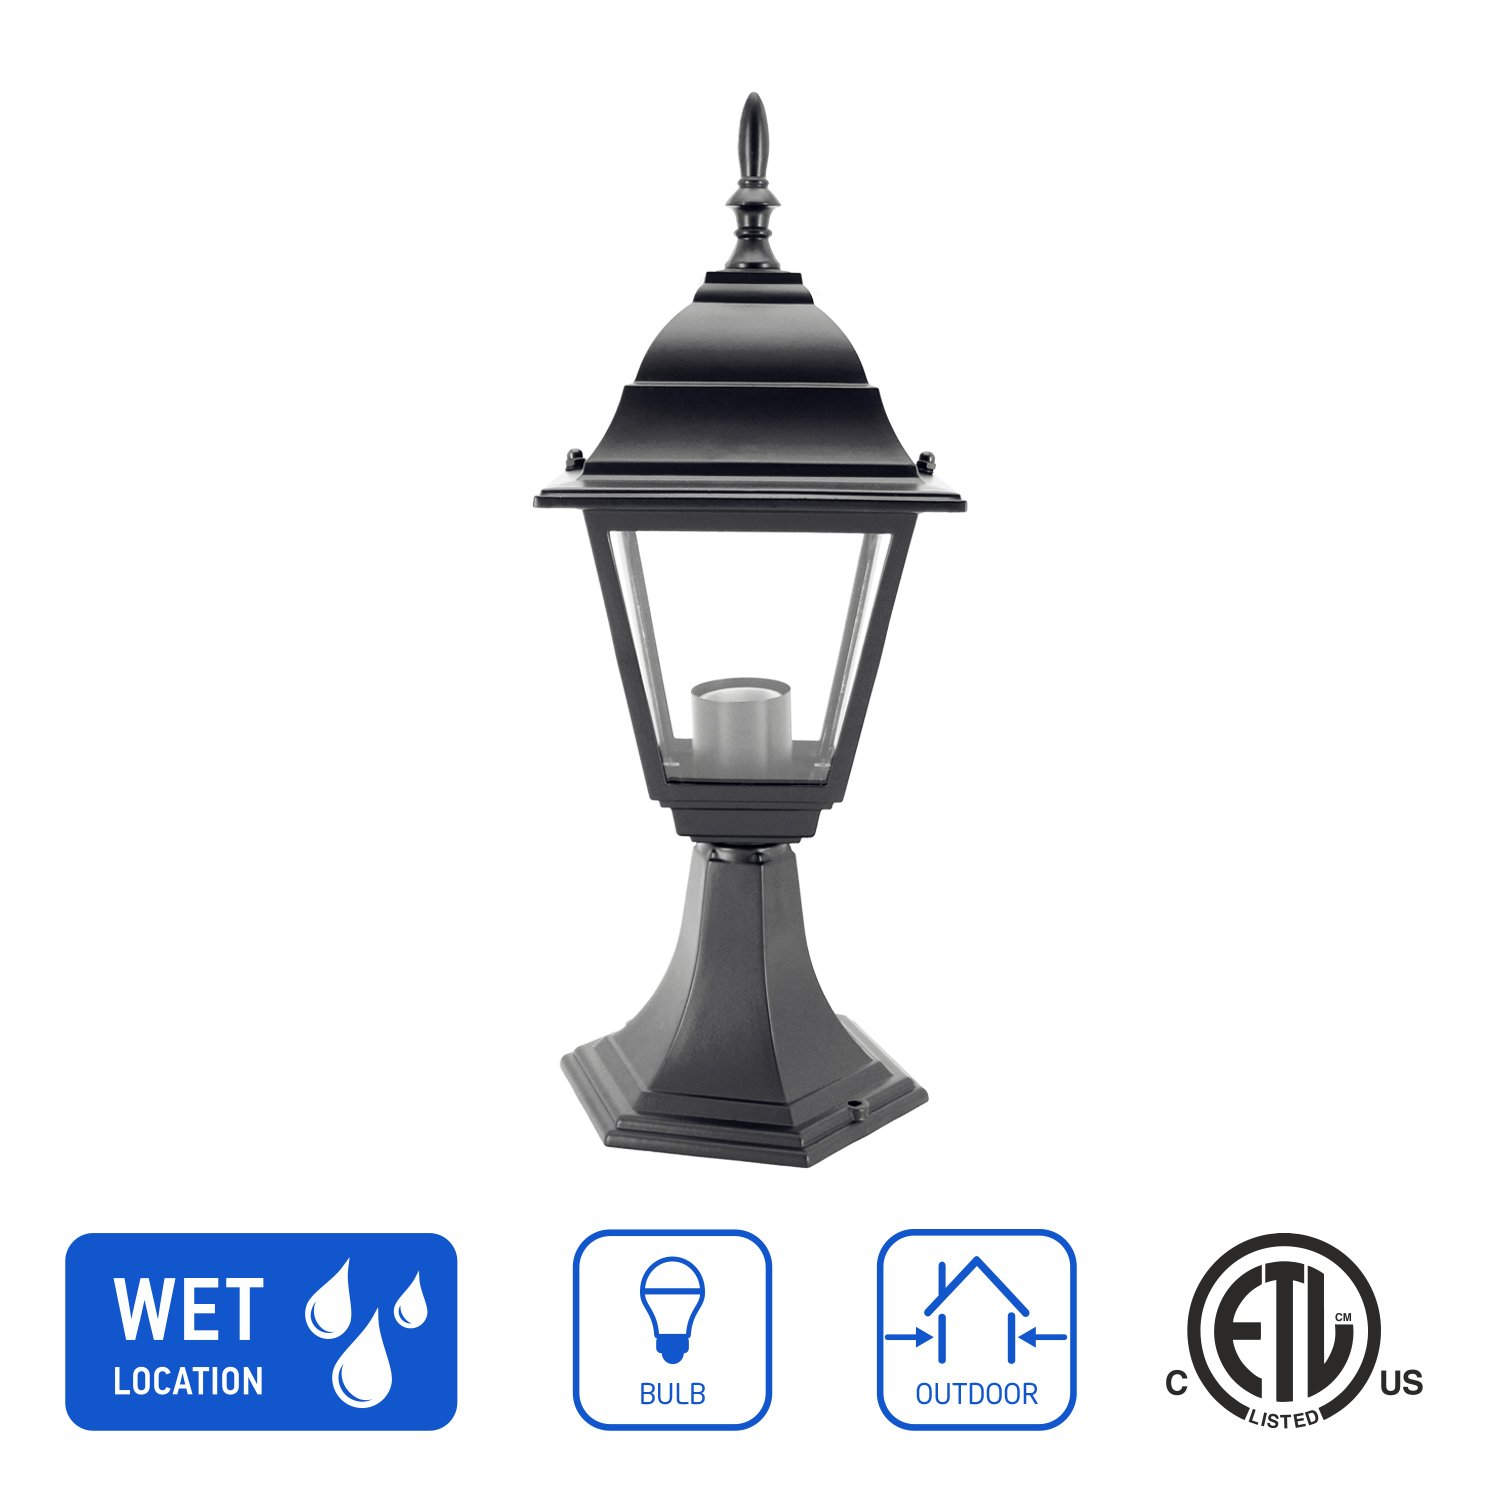 in Home 1-Light Outdoor Post Lantern L02 Series Traditional Design Black Finish Clear Glass Shade, ETL Listed